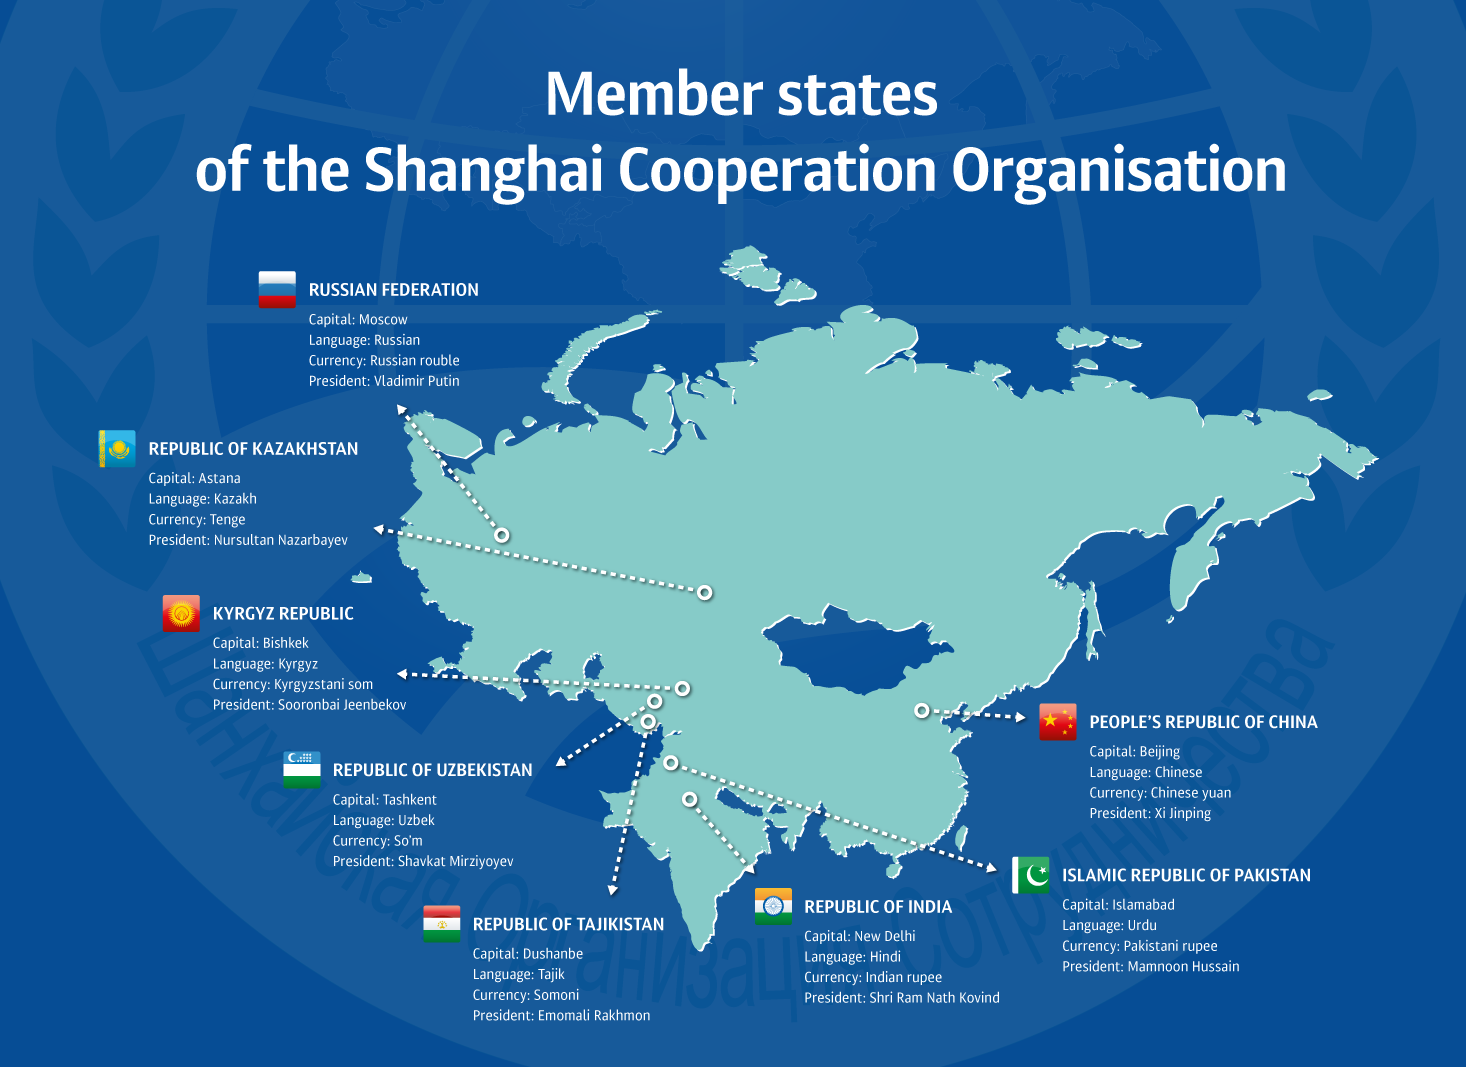 Why is the Shanghai Cooperation Organization (SCO) important